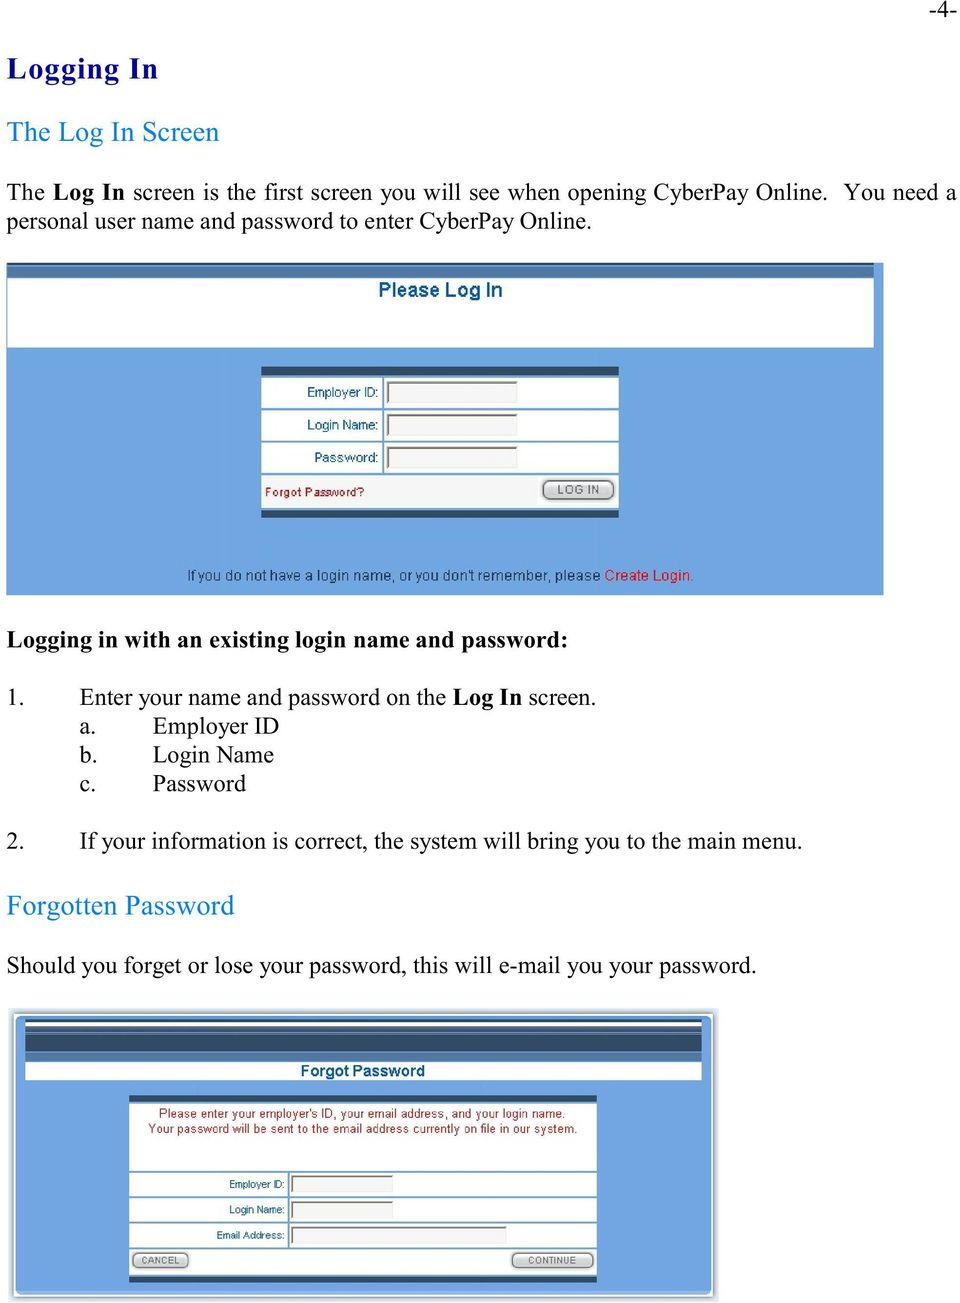 Enter your name and password on the Log In screen. a. Employer ID b. Login Name c. Password 2.